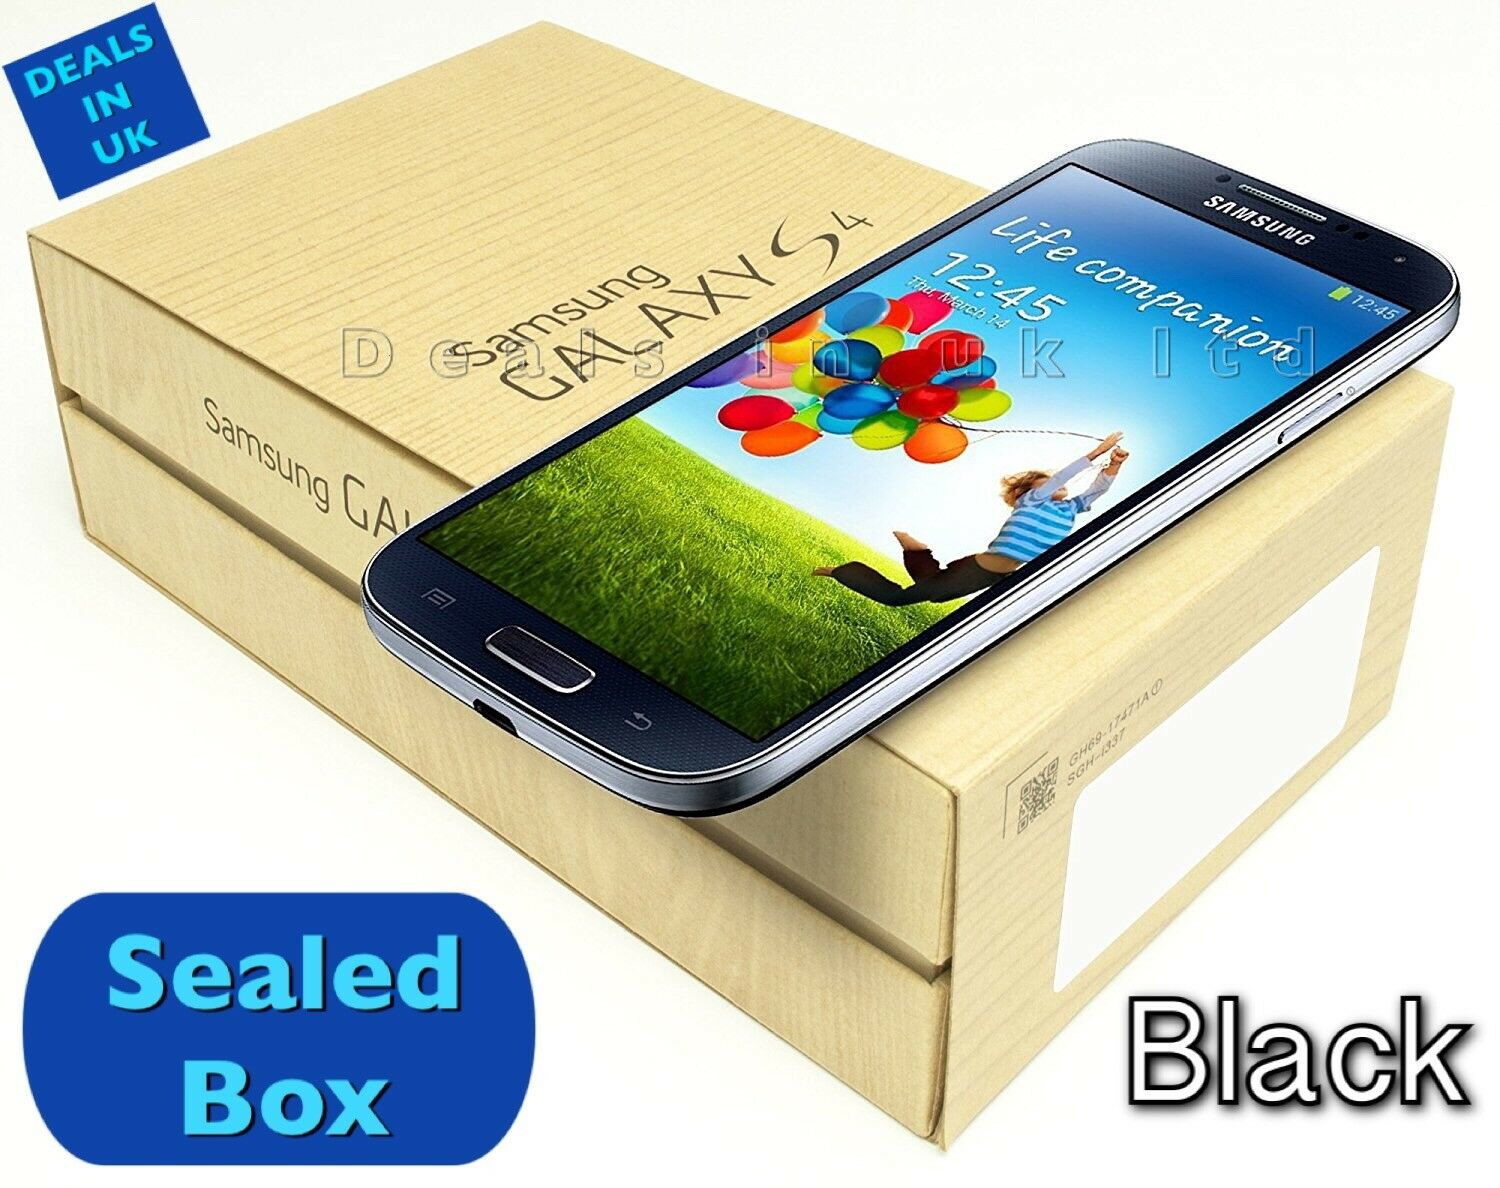 NEW BRAND NEW SAMSUNG GALAXY S4 GT-I9500 BLACK UNLOCKED SIM-FREE ANDROID SMARTPHONE